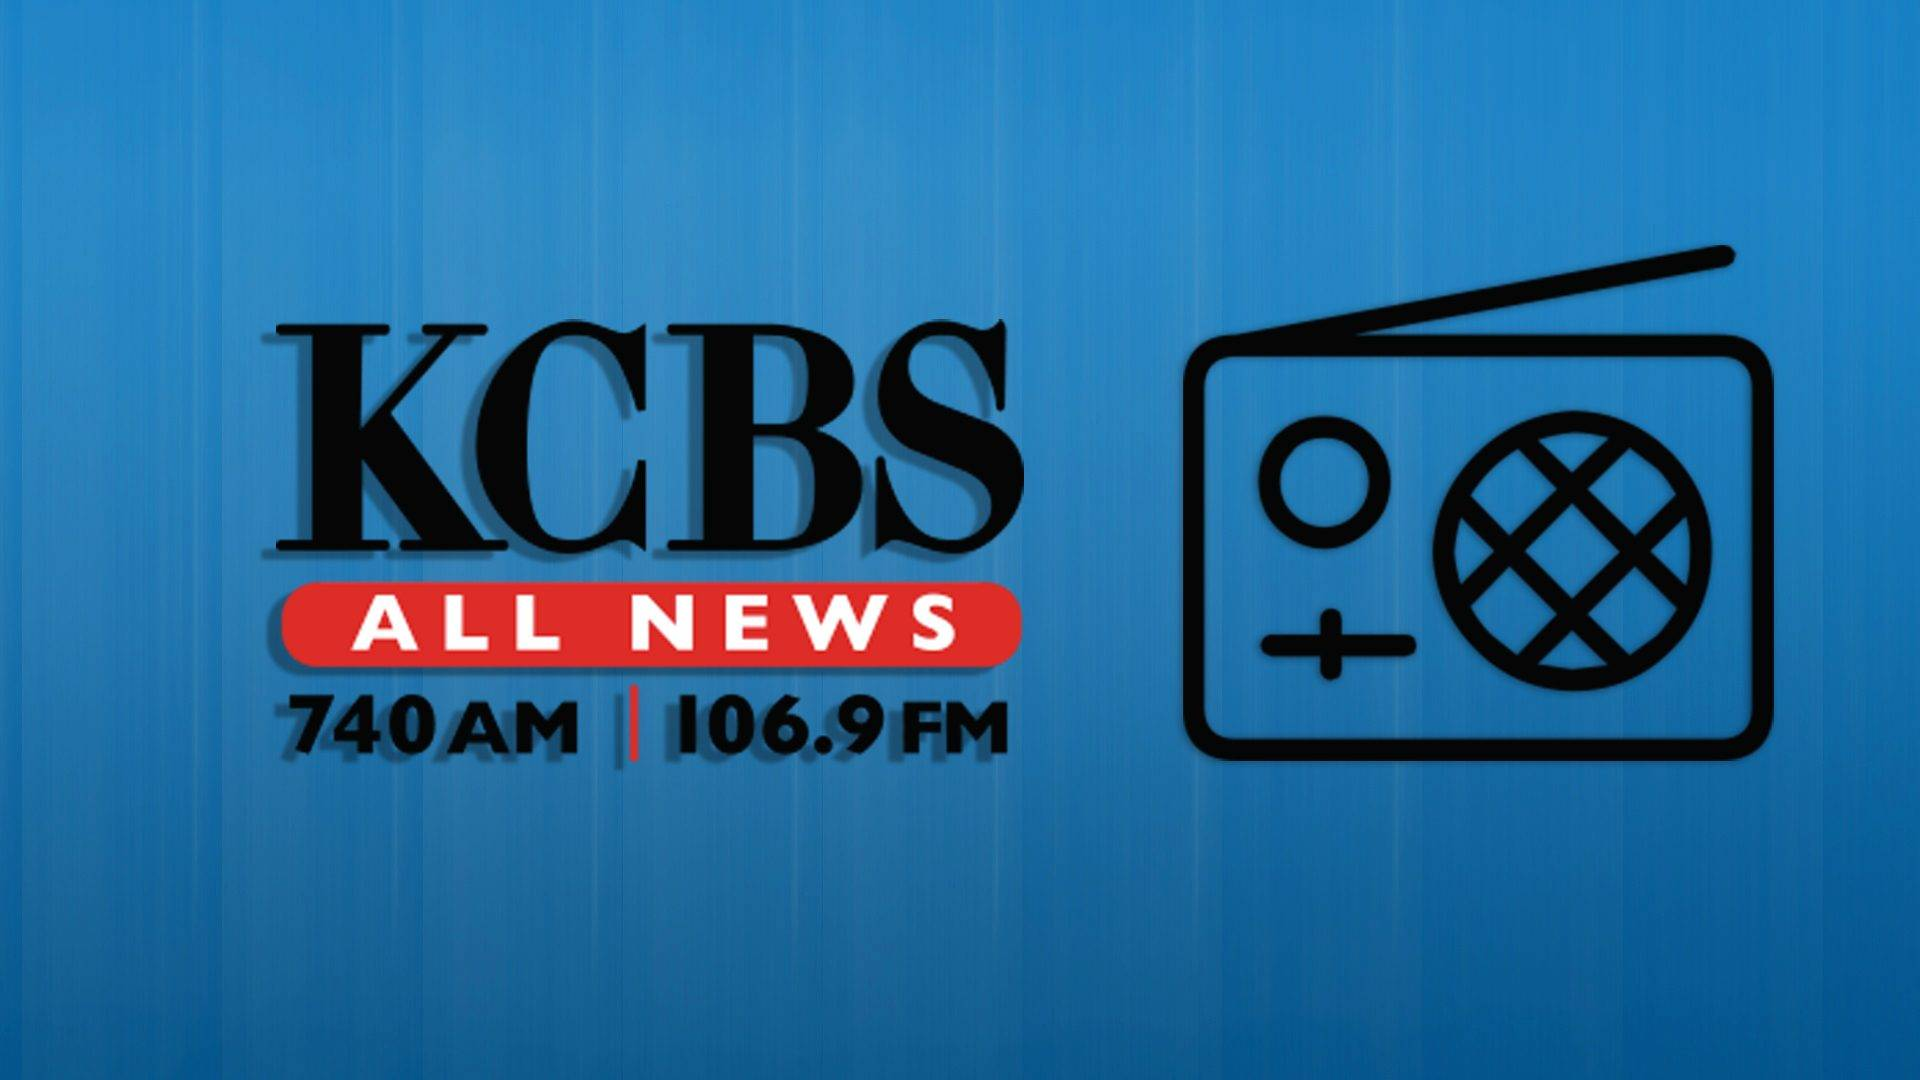 KCBS All news AM 740